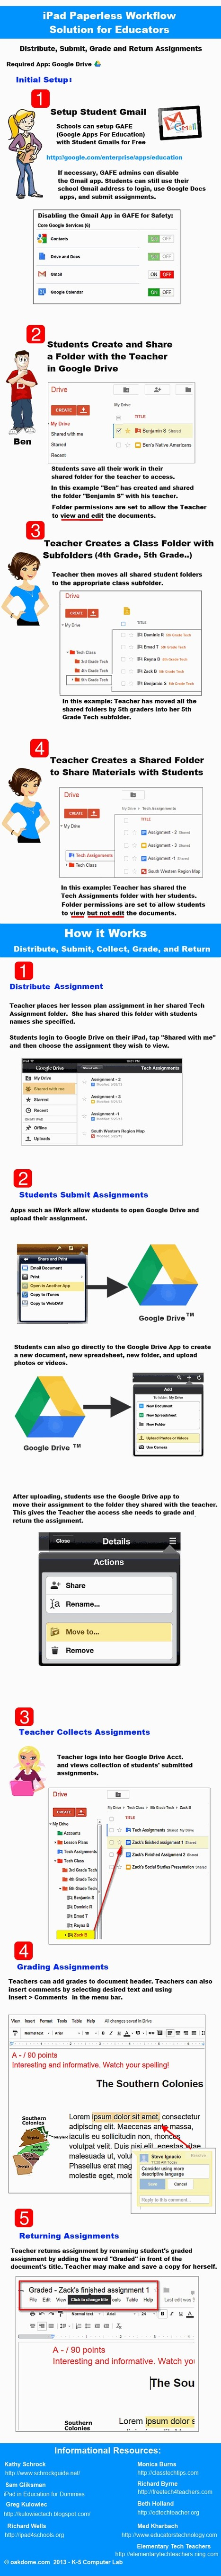 The Step-By-Step iPad Workflow For Teachers - Infographic | IPAD, un nuevo concepto socio-educativo! | Scoop.it